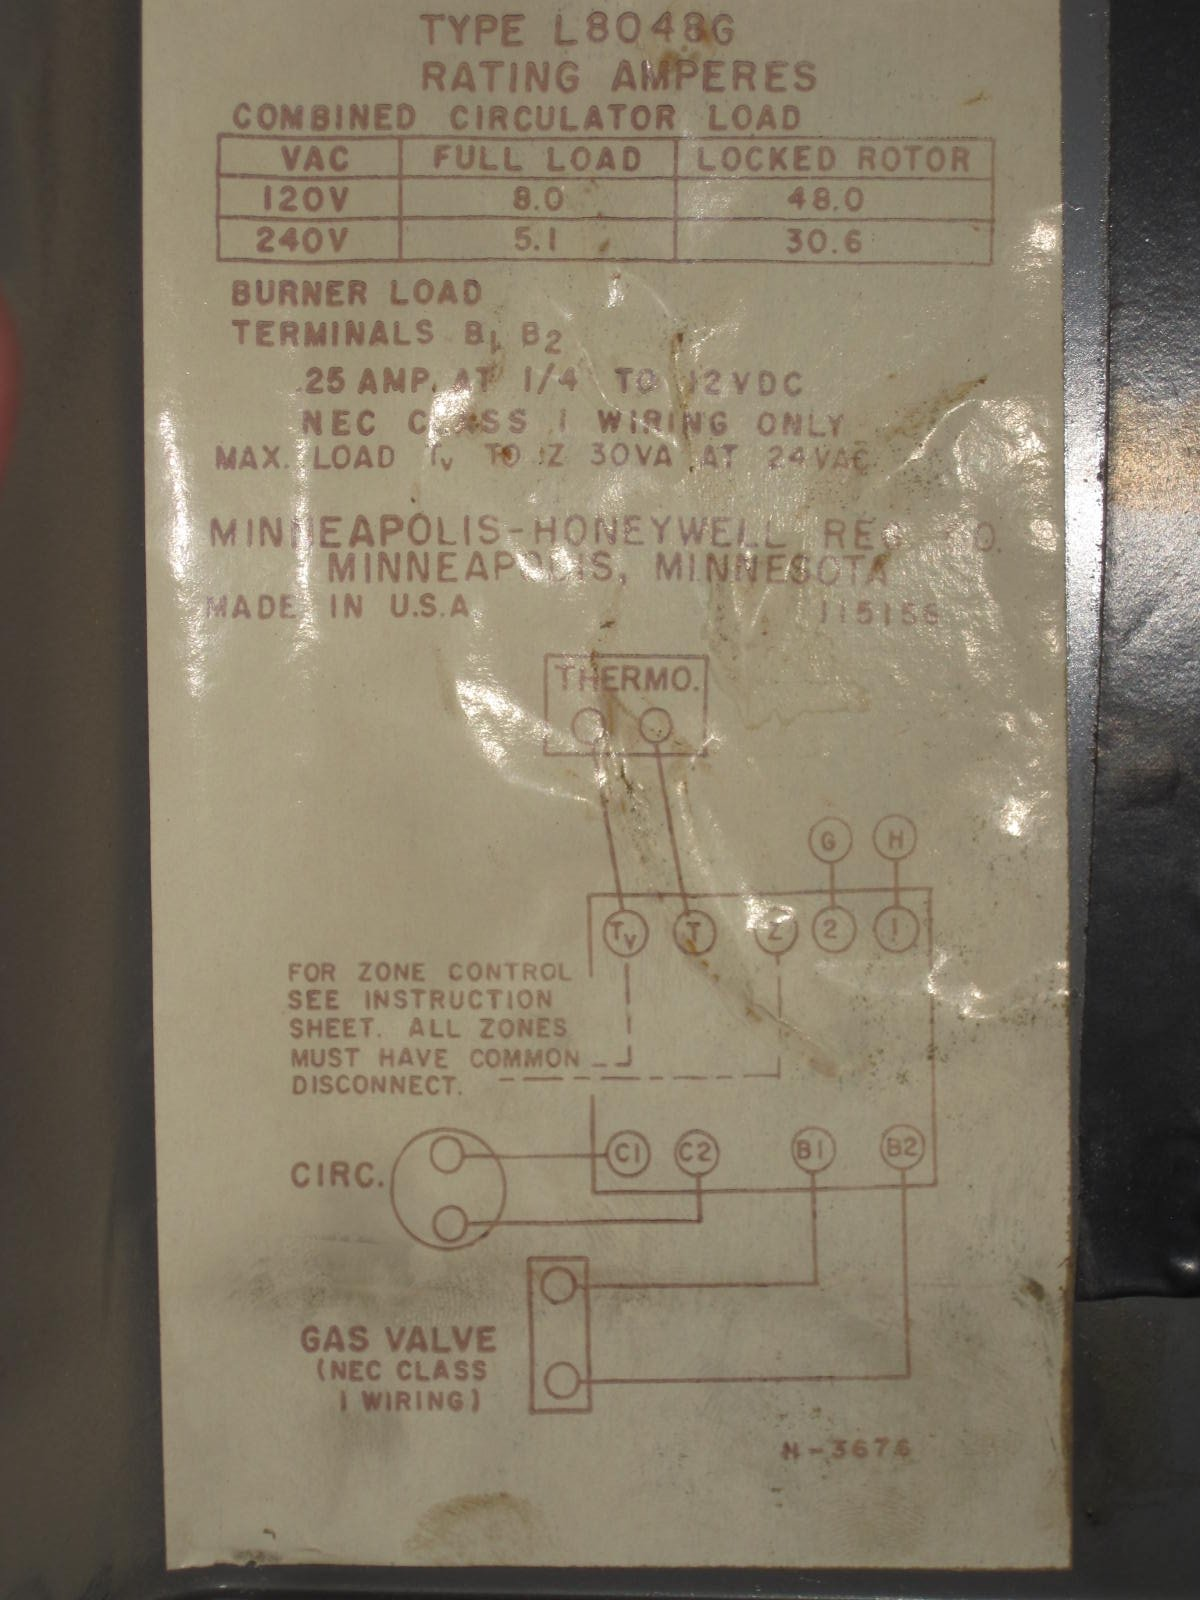 Honeywell Aquastar L8048g 2 Taco Zone Valves Adding A 24v Gas Valve Wiring Diagram Img 3333